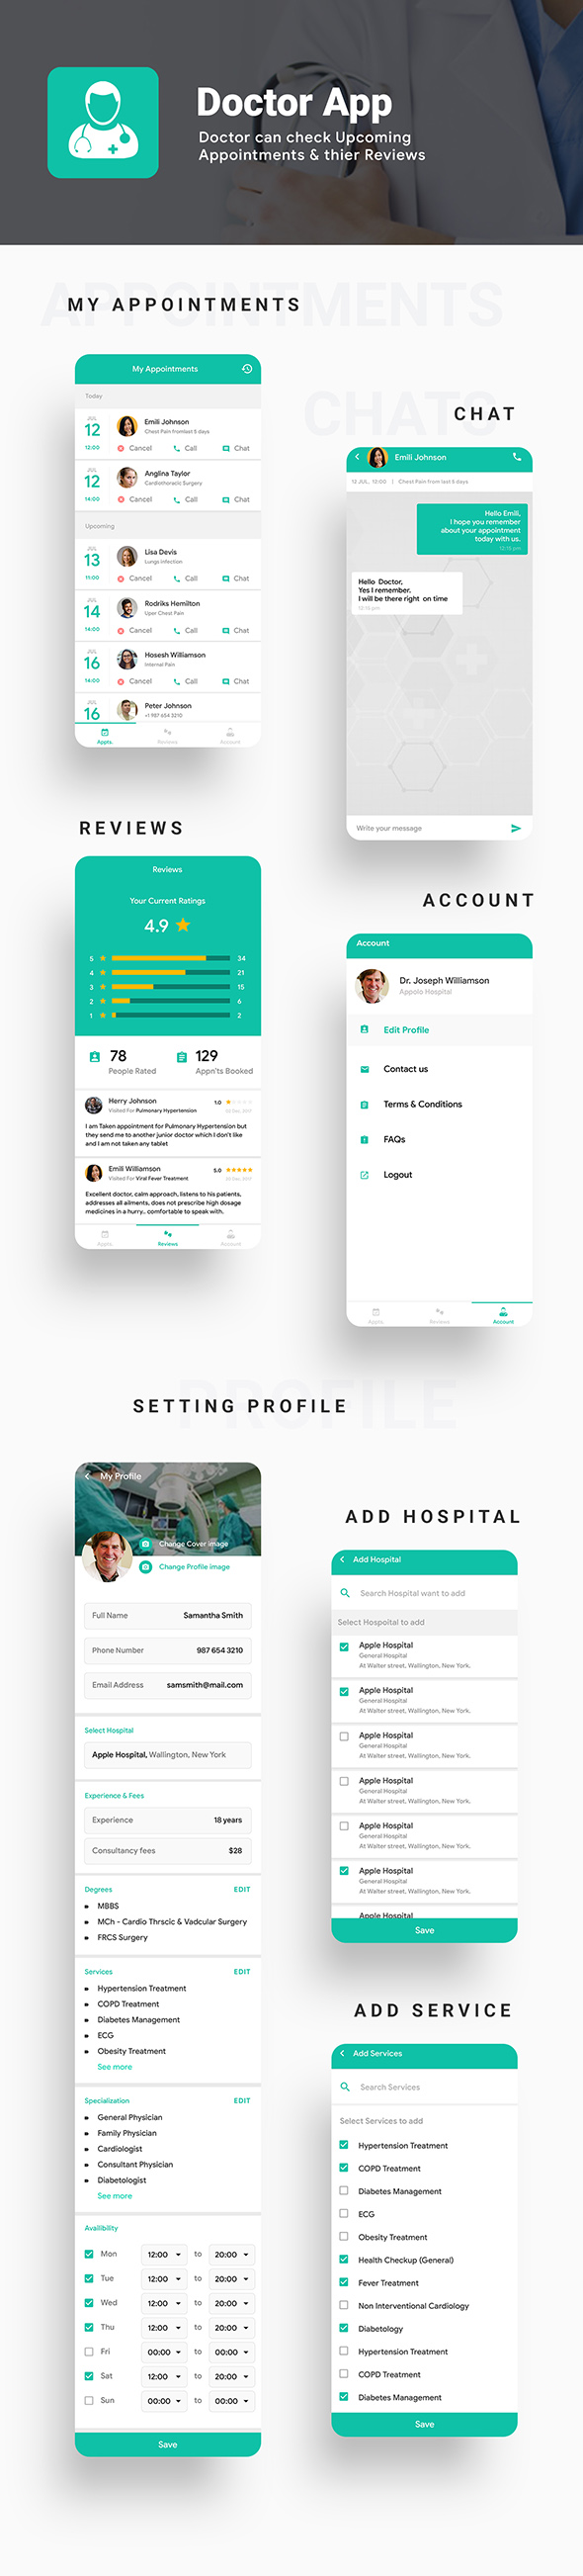 Nearby Doctor App | Doctor Appointment Booking App | 3 Apps| Android + iOS Template | IONIC 5 - 5